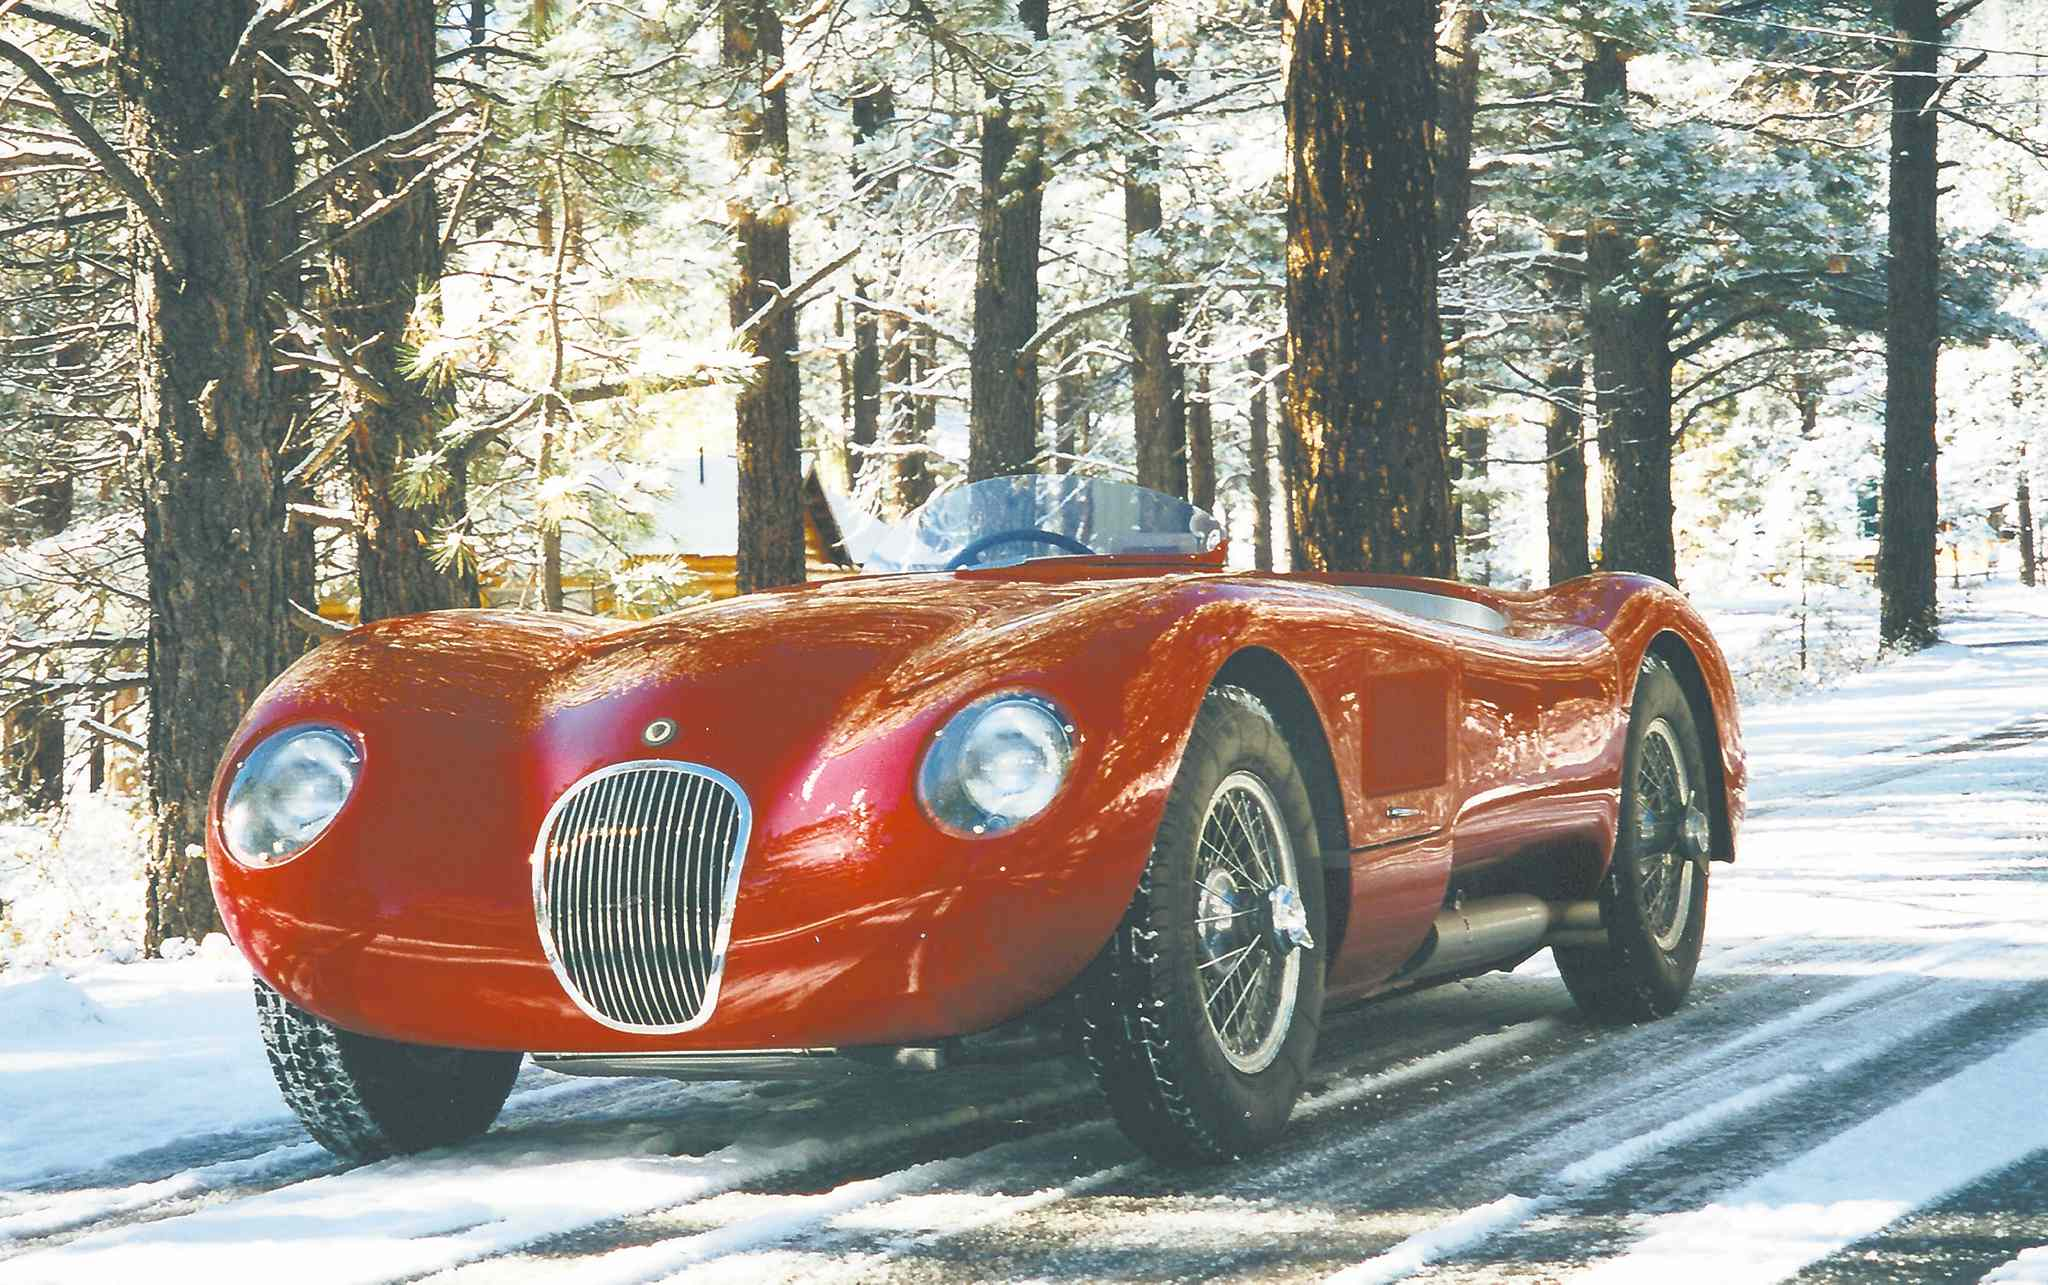 Christian J. Jenny / Bloomberg news